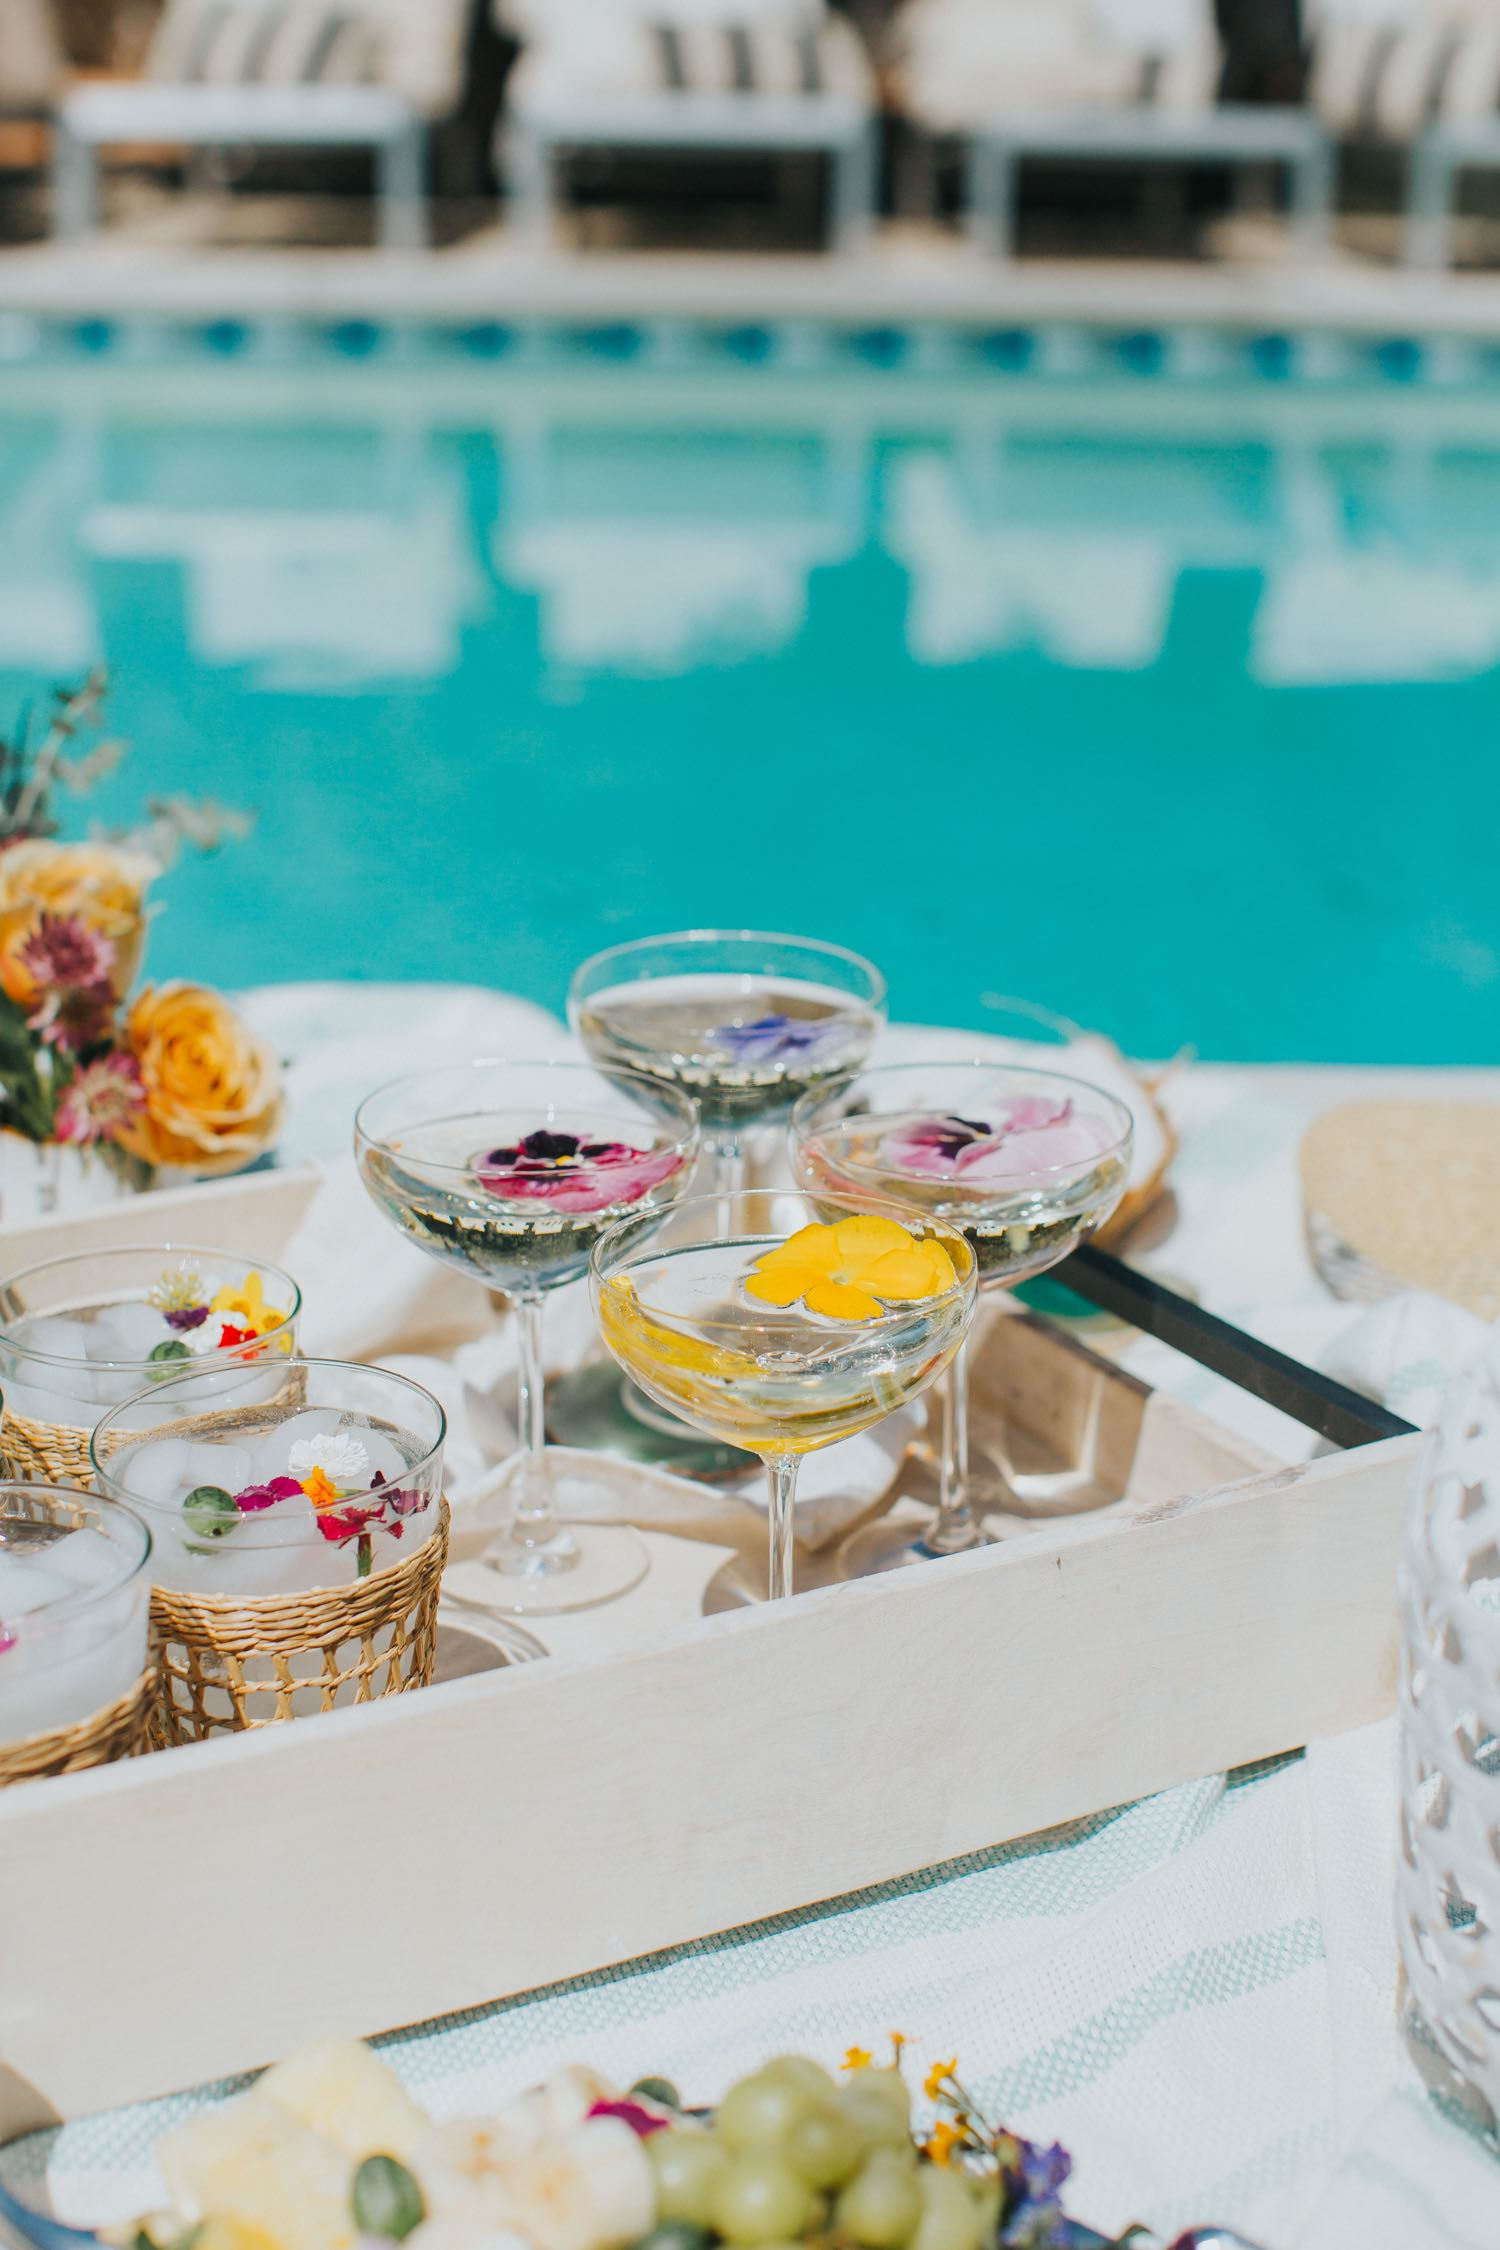 flower cocktails next to pool